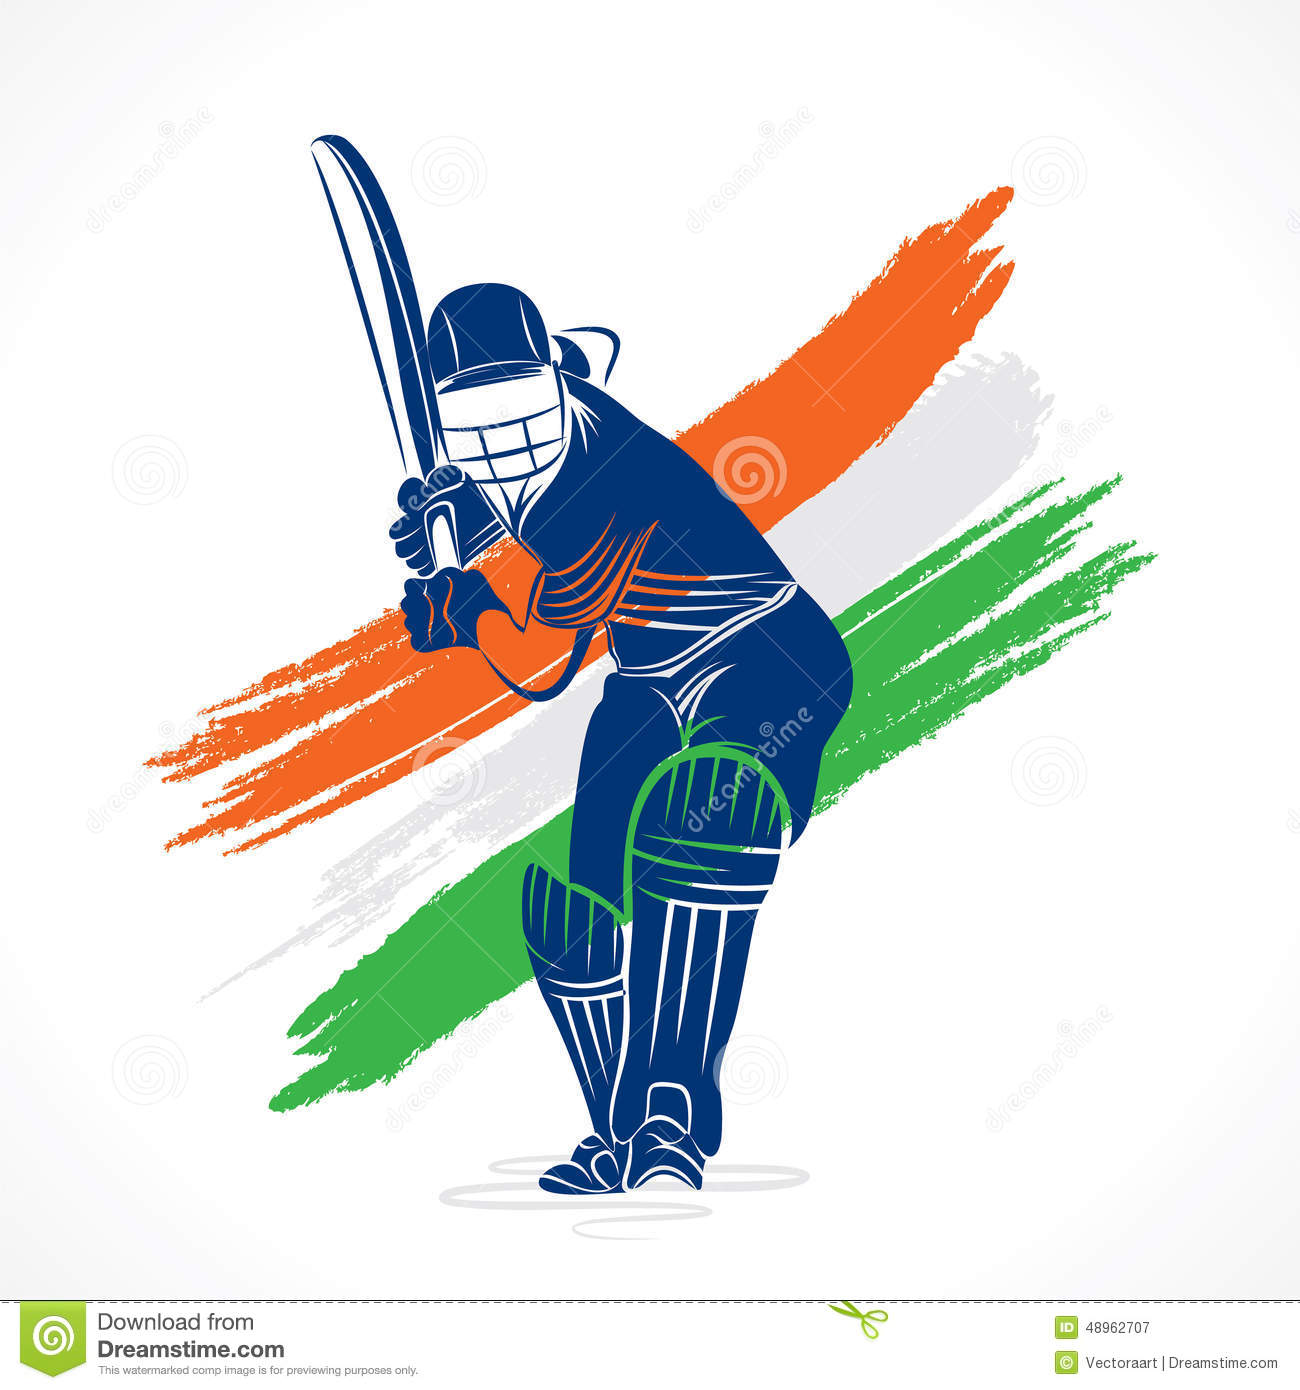 Creative Cricket Banner Design Stock Vector - Image: 48962707